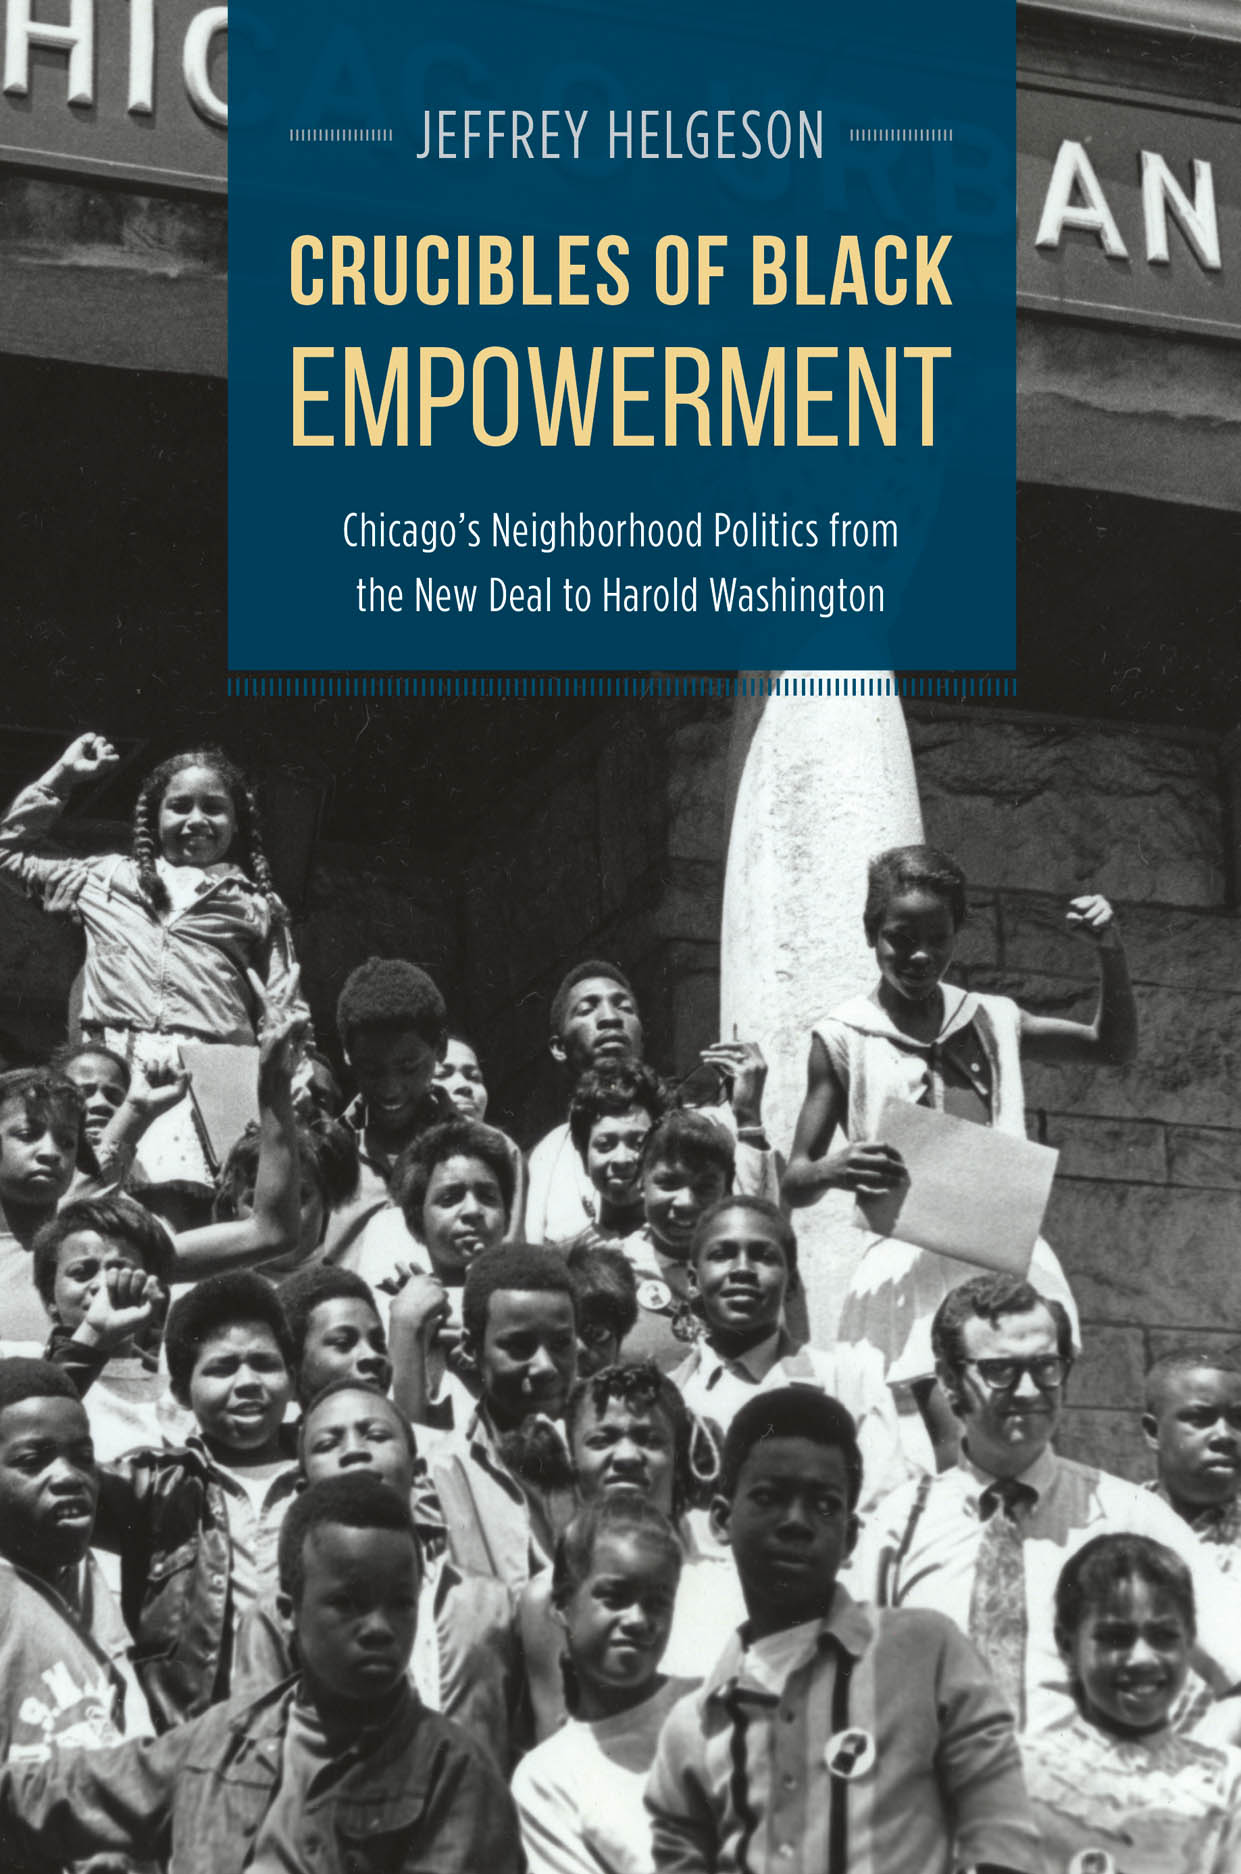 Crucibles of Black Empowerment: Chicago's Neighborhood Politics from the New Deal to Harold Washington